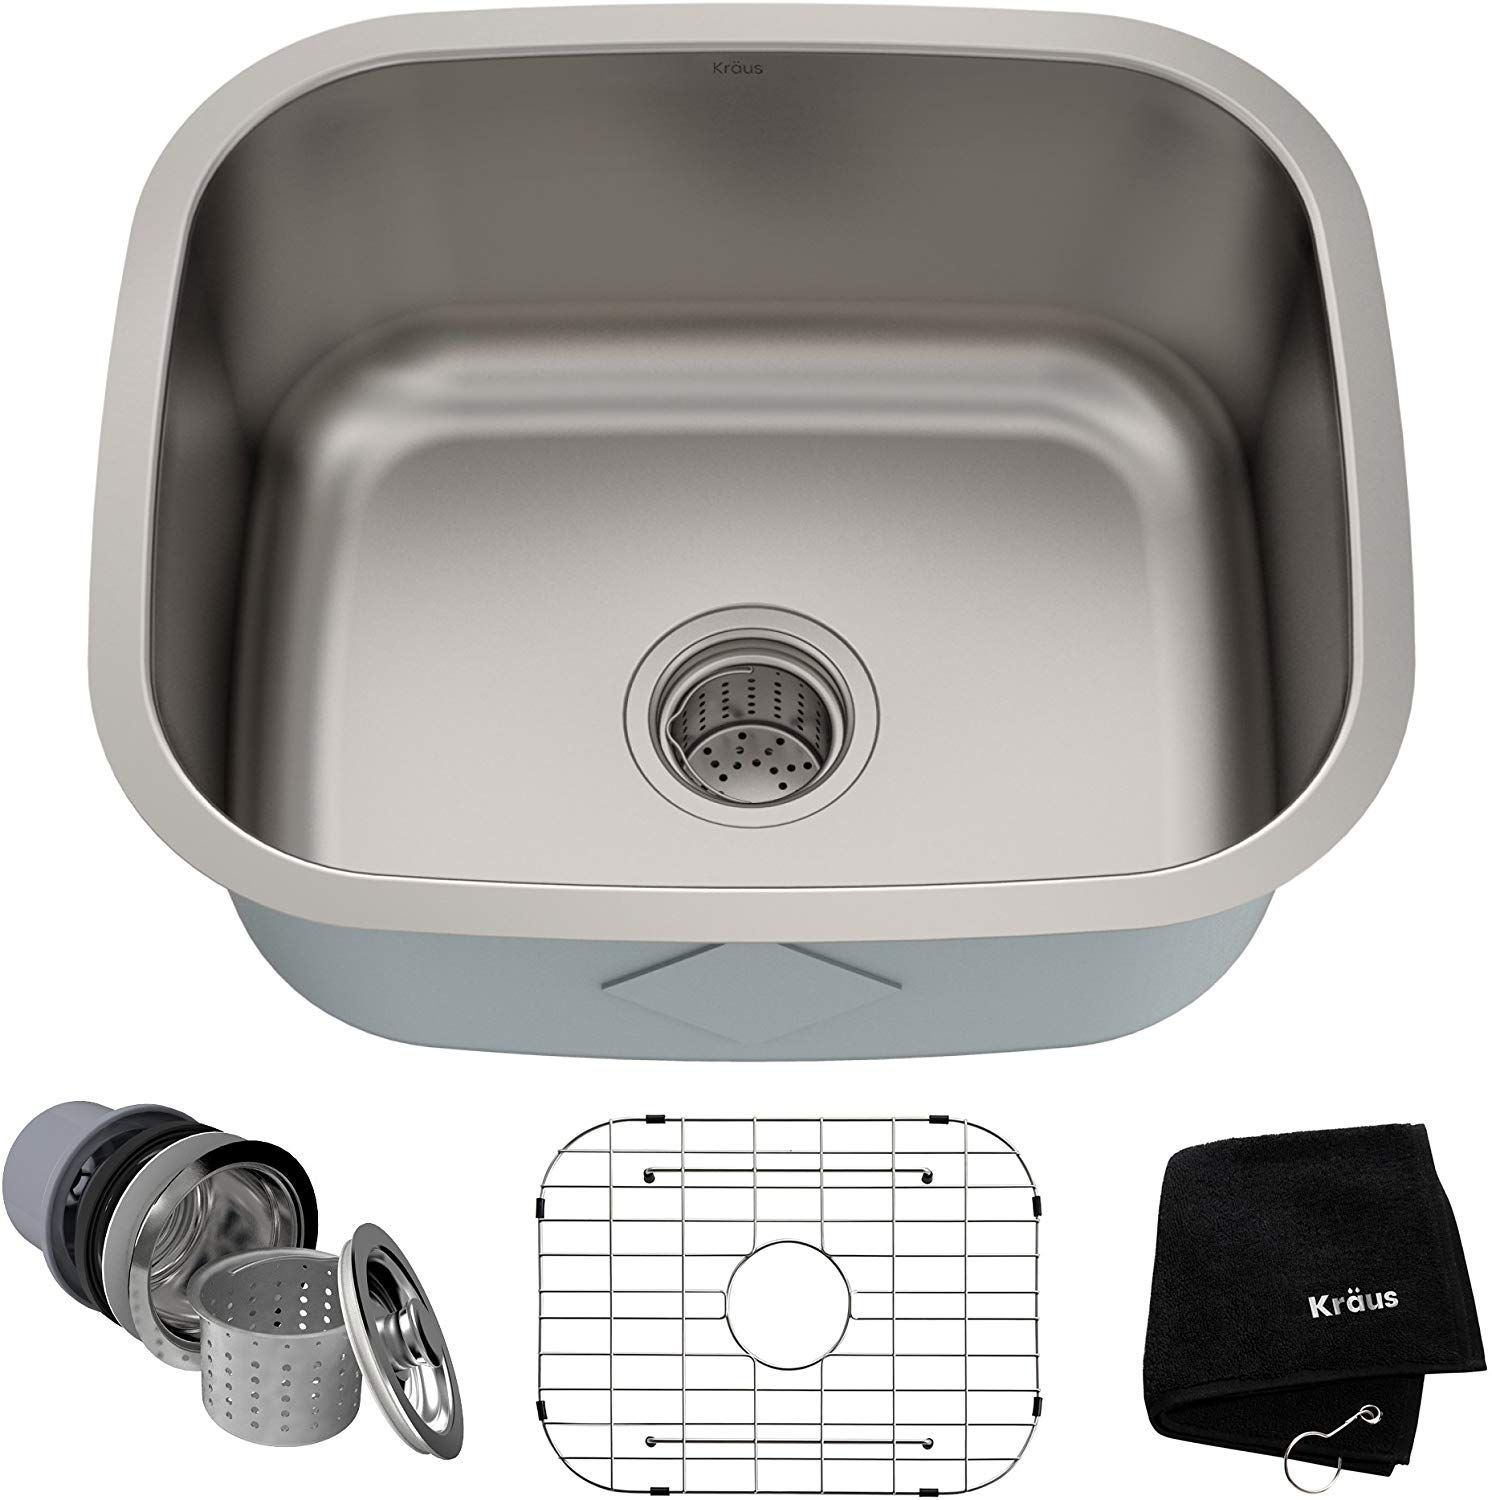 Kraus Kbu11 20 Inch Undermount Single Bowl 16 Gauge Stainless Steel Kitchen Sink Single Bowl Kitchen Sink Undermount Kitchen Sinks Kitchen Sink